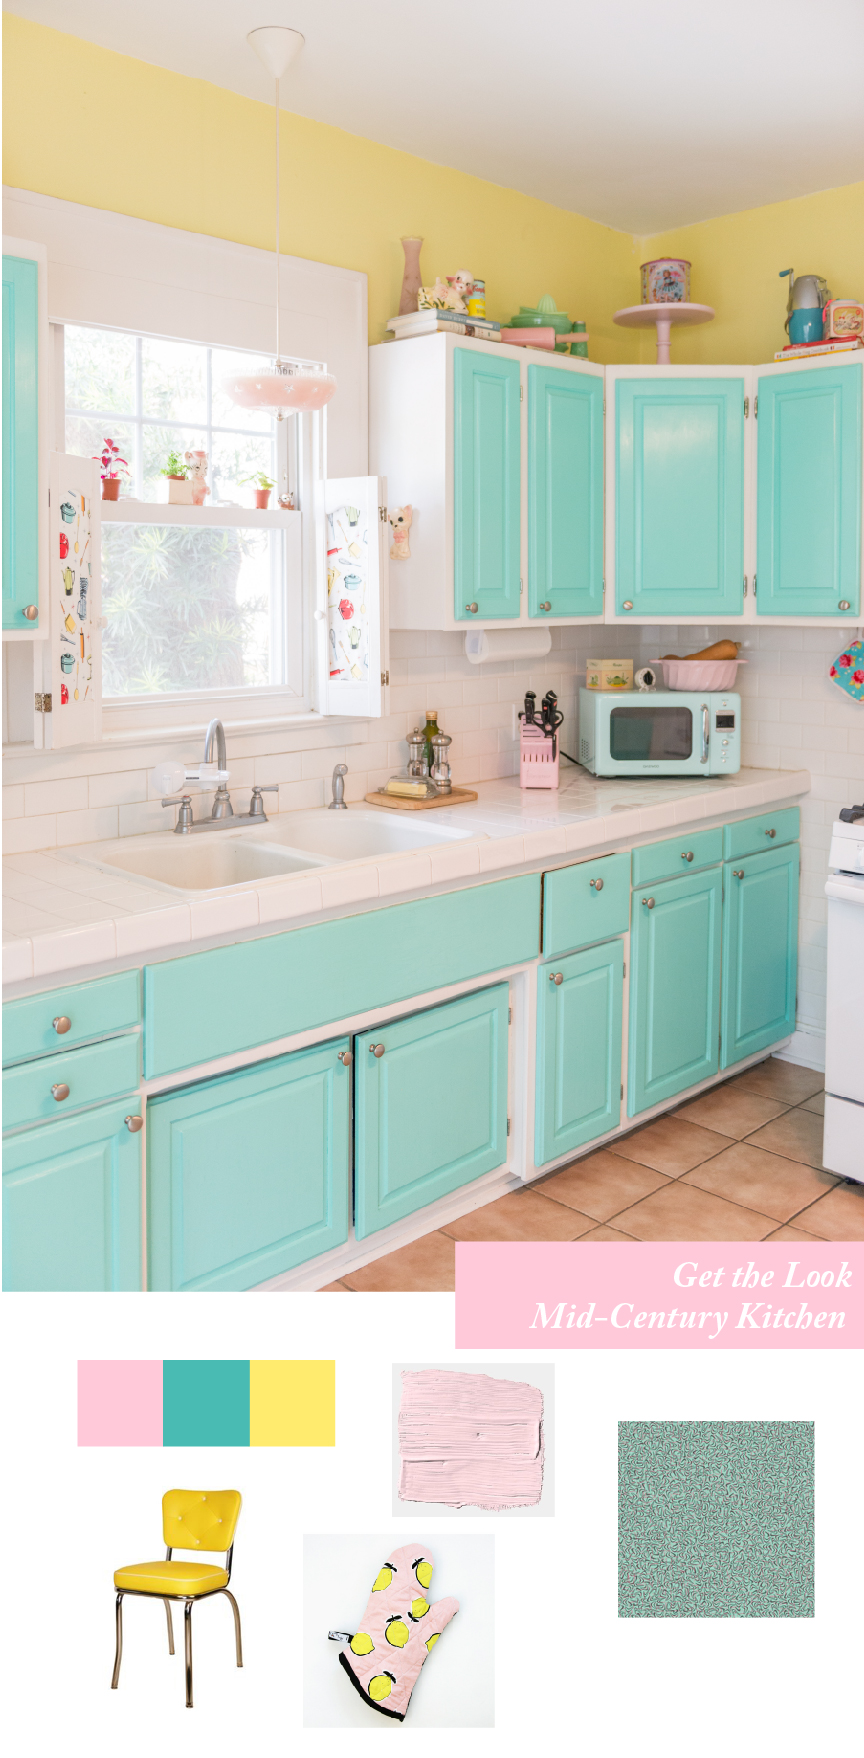 Get the Look | Southern Spring Interiors | Mid-Century Kitchen | Retro Kitchen | Retro Kitchen Decor | Retro Home Decor | Mid-Century Home Decor | Mid-Century Kitchen Ideas | Aqua Kitchen | Colorful Kitchen | Vintage Kitchen | Vintage Home Decor Ideas | Alice & Pearl | Paprika Southern